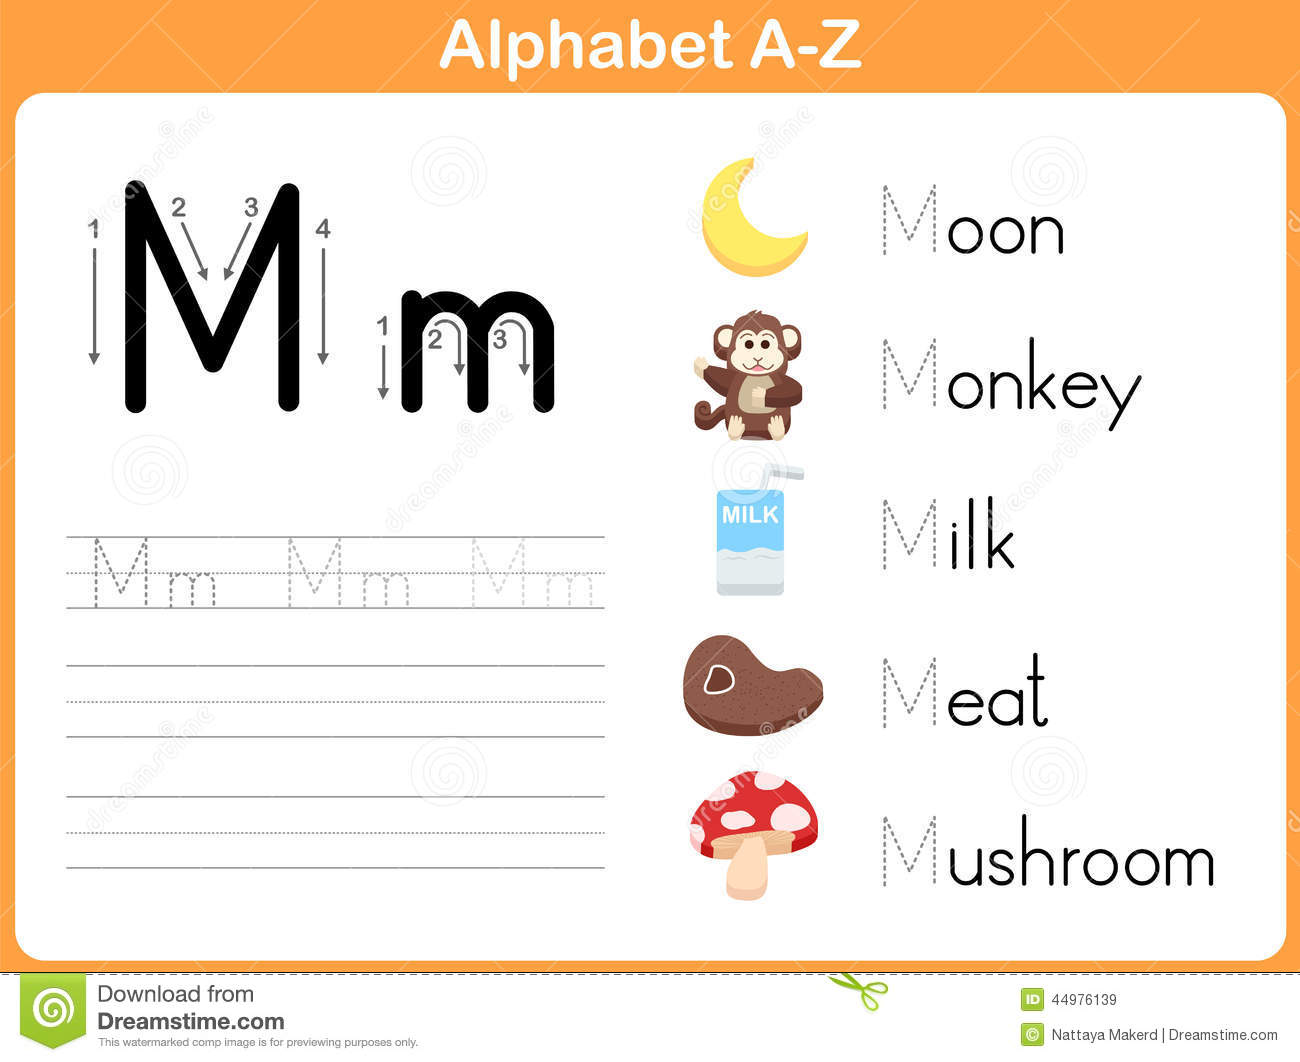 writing a to z The a-z of learning how to write: packed full of ideas for kids writing activities.